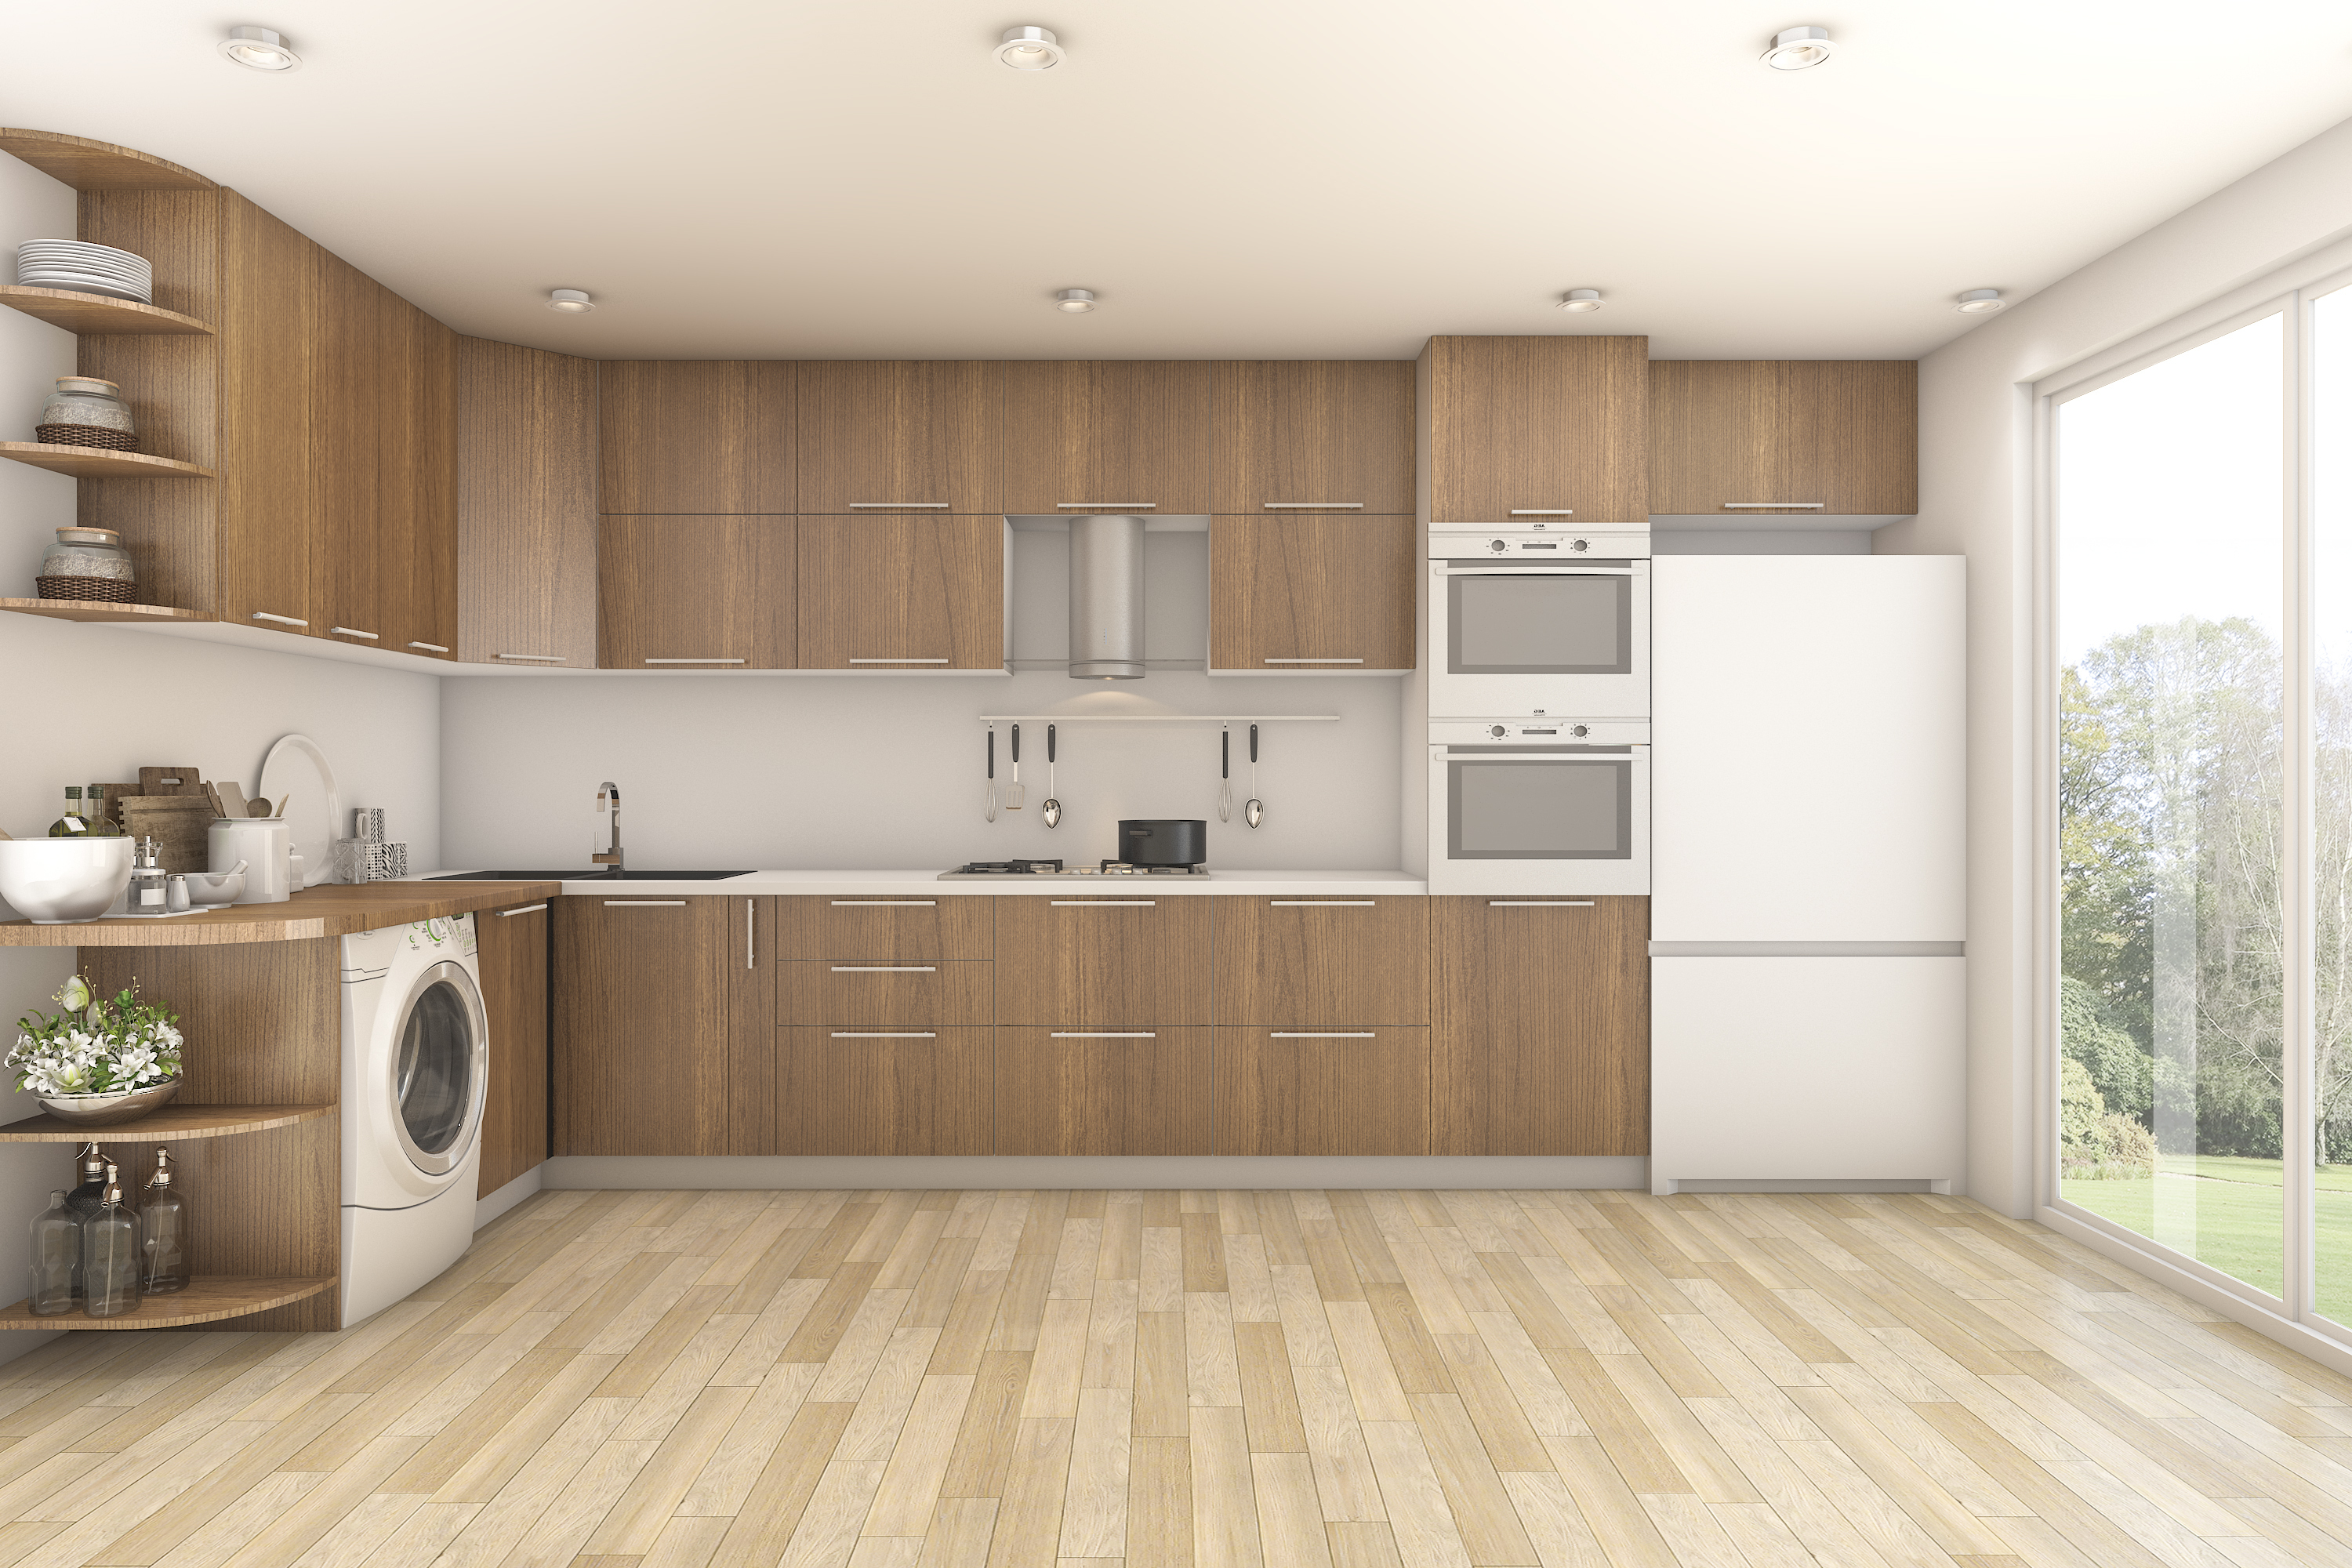 Stupendous Kitchen Wise Pros And Cons Of Built In Kitchen Appliances Download Free Architecture Designs Embacsunscenecom